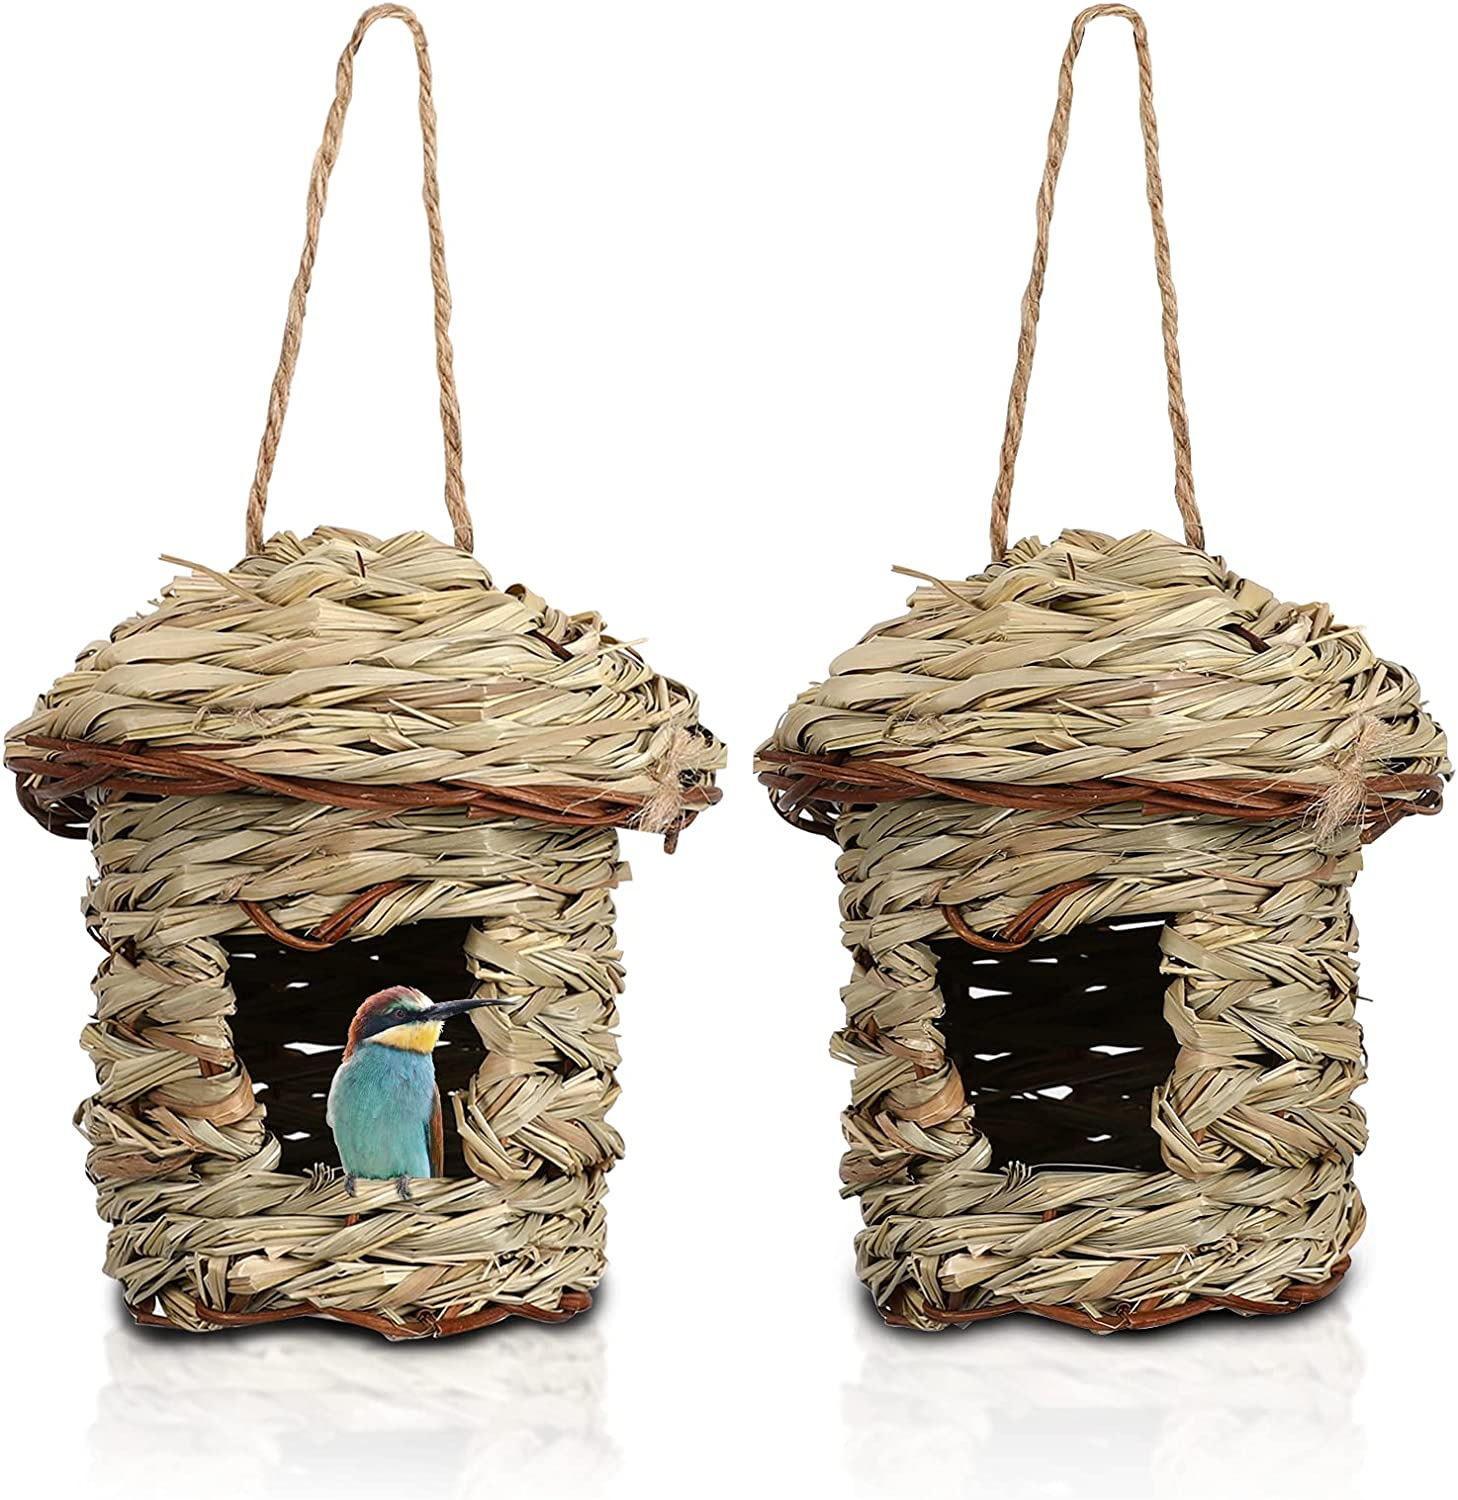 Free Shipping Cheap Bargain Gift Hummingbird Houses for Max 55% OFF Outside Nests Outdoors